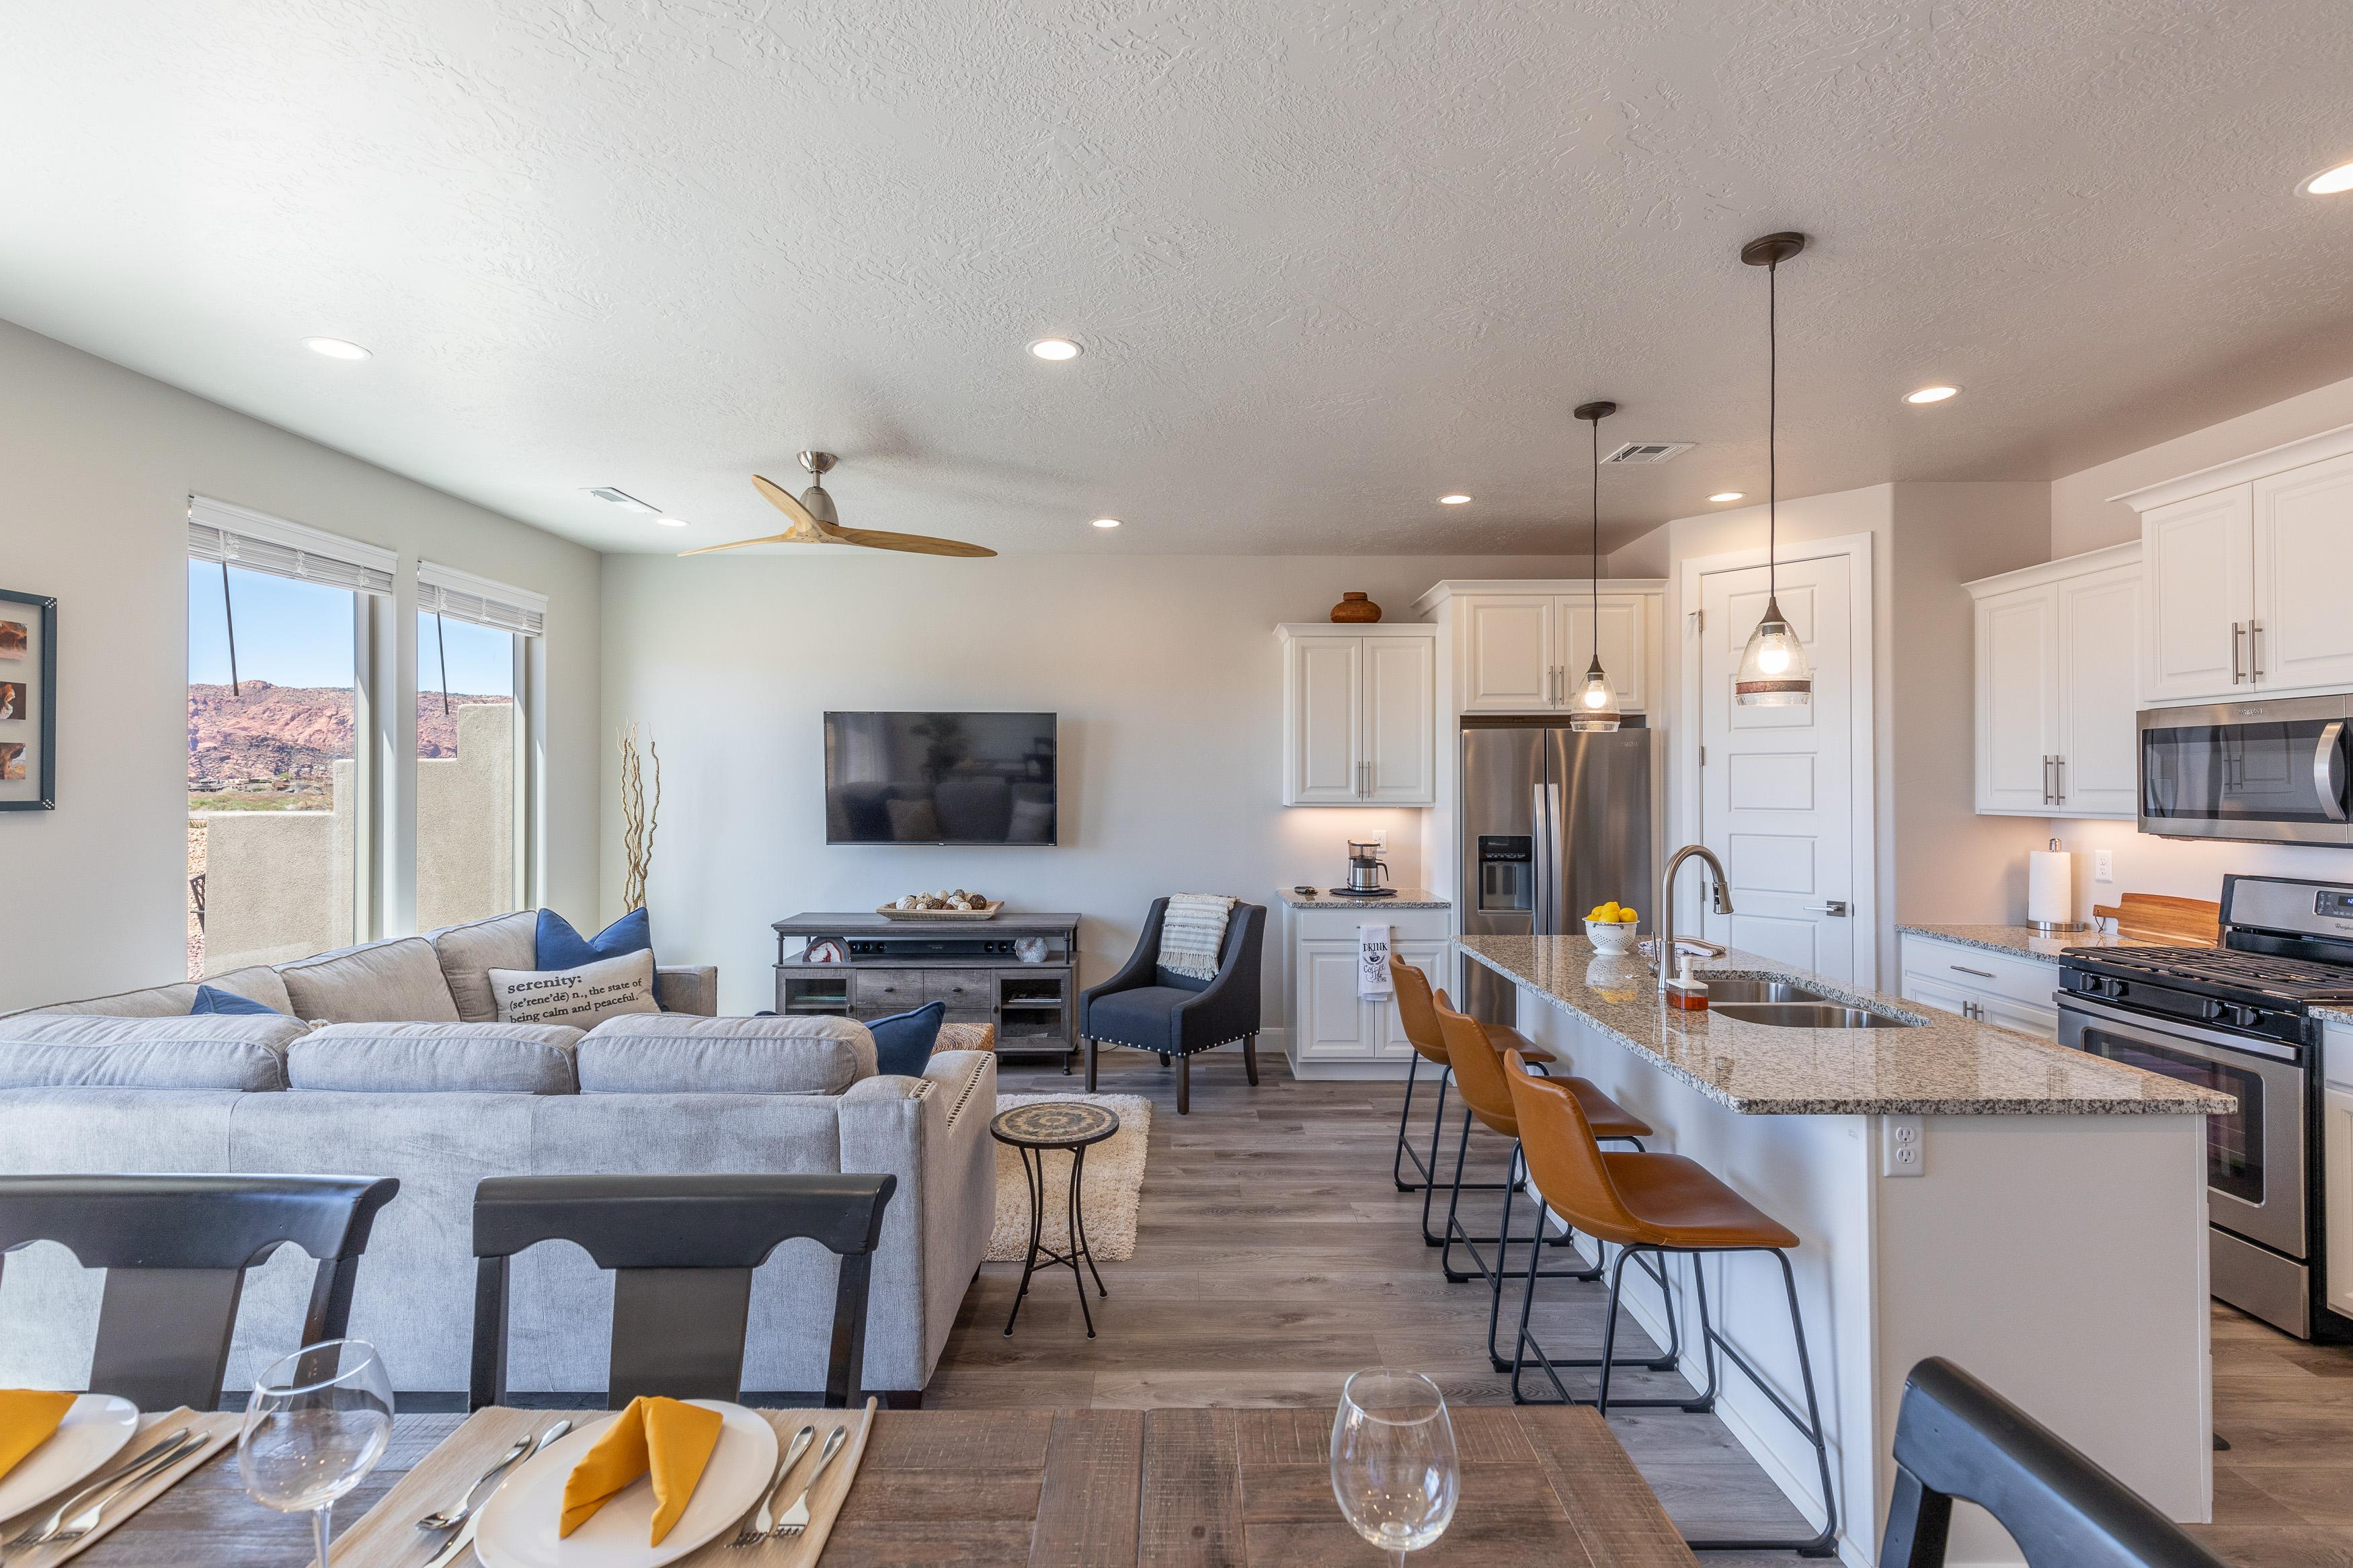 The living room is designed as an open floor plan and is a great gathering place for meals, games, or watching TV during your stay. Notice the view from this room!